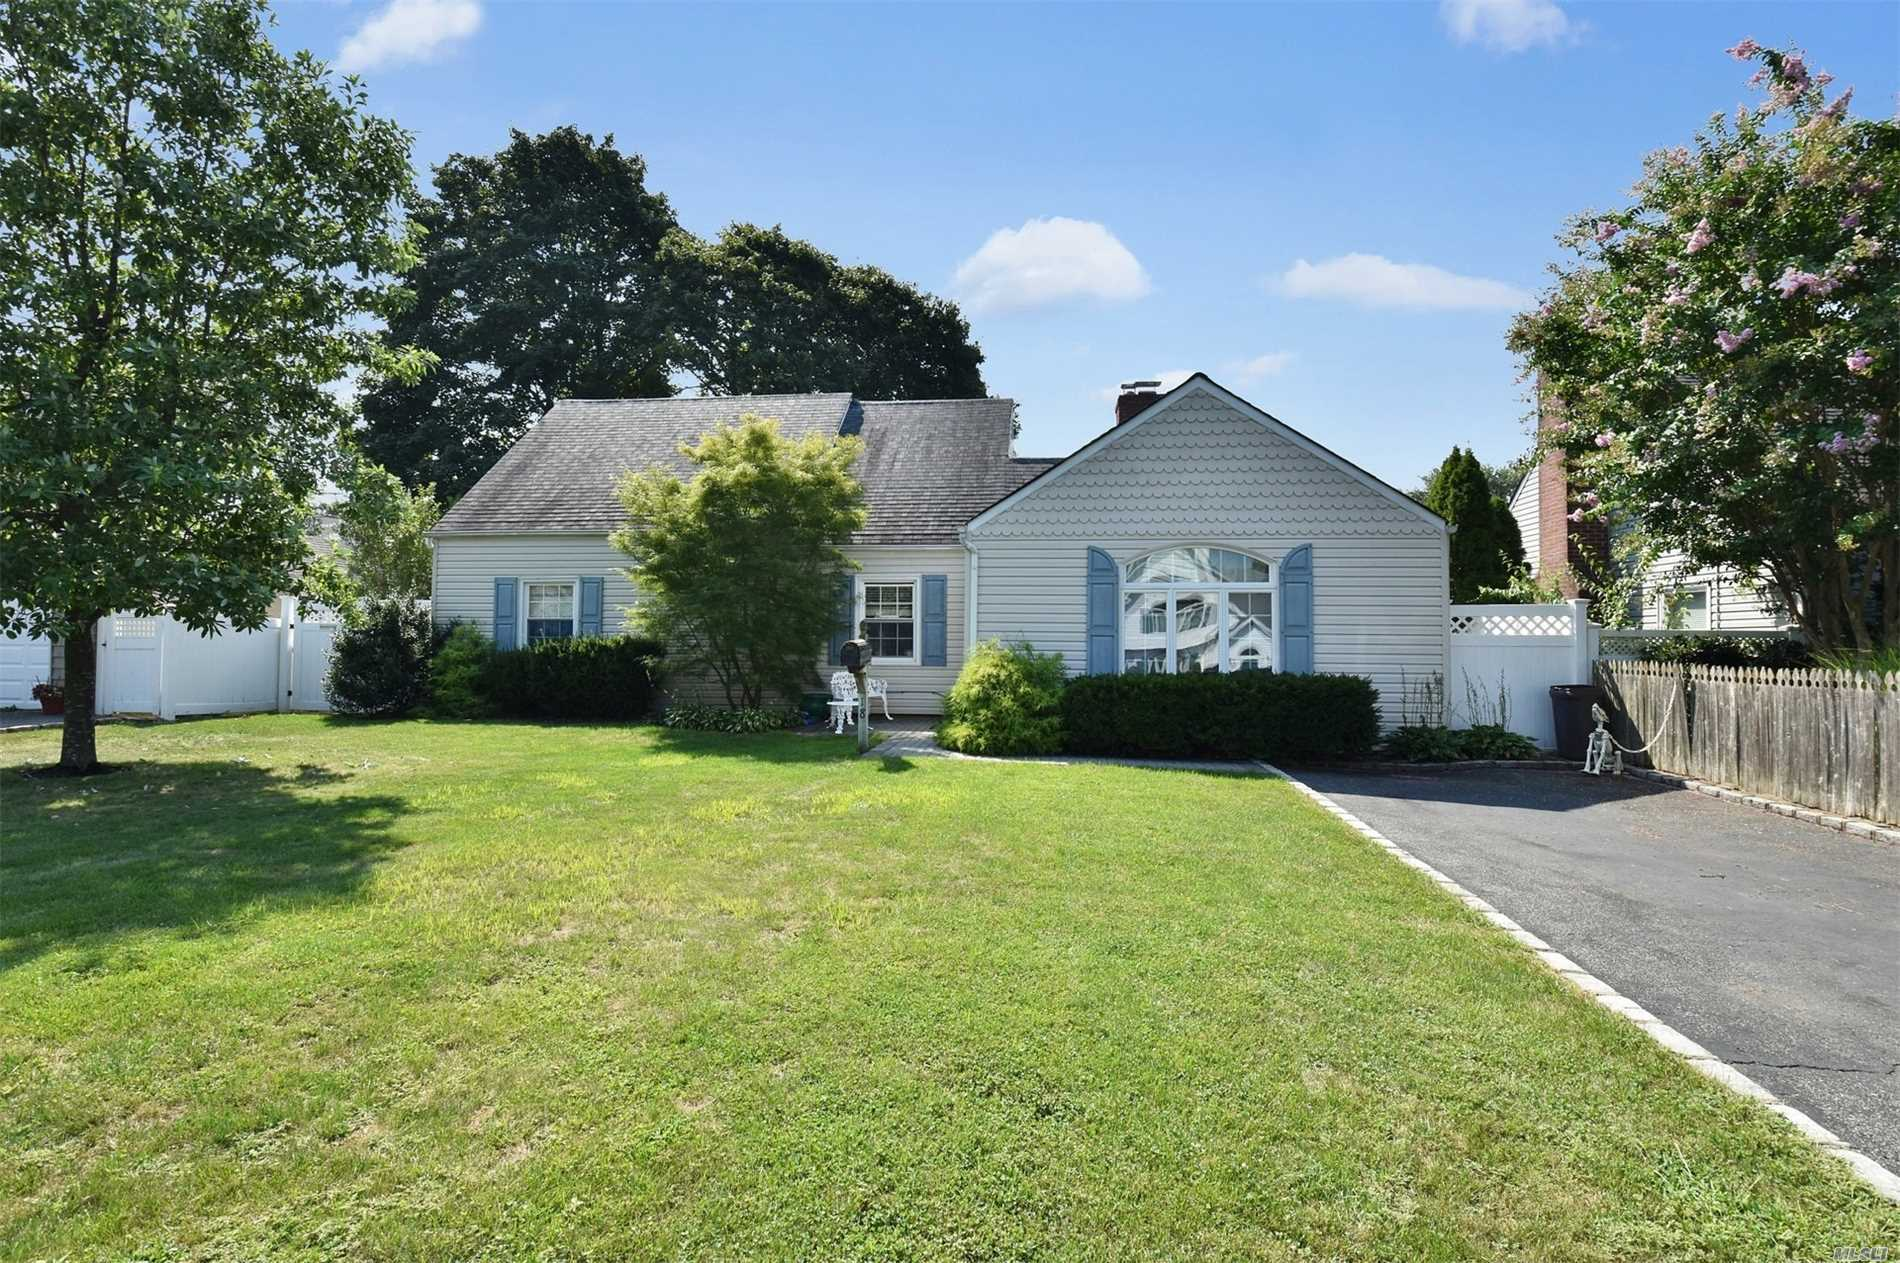 Expanded Mid Block Located Cape Featuring 3 Bedrooms, 2 Full Baths,  Kitchen, Dining Room, Living Room W/ Fireplace, Den, Part Basement On Nice 60 X 100 Property